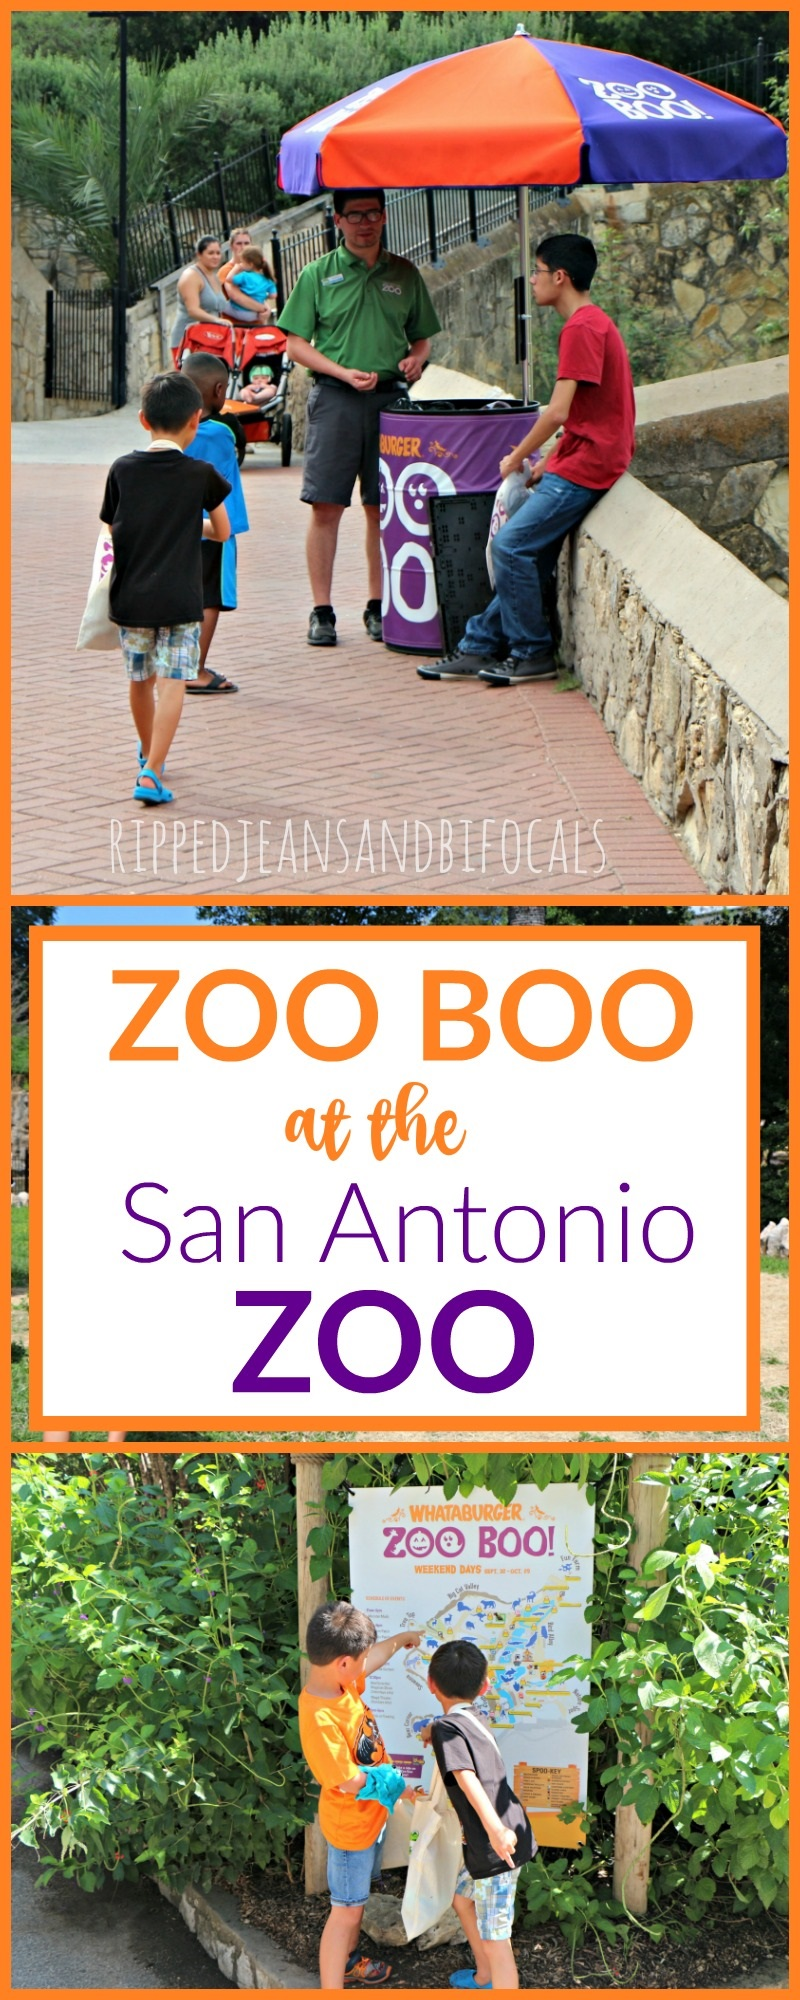 Zoo Boo at the San Antonio Zoo|Ripped Jeans and Bifocals